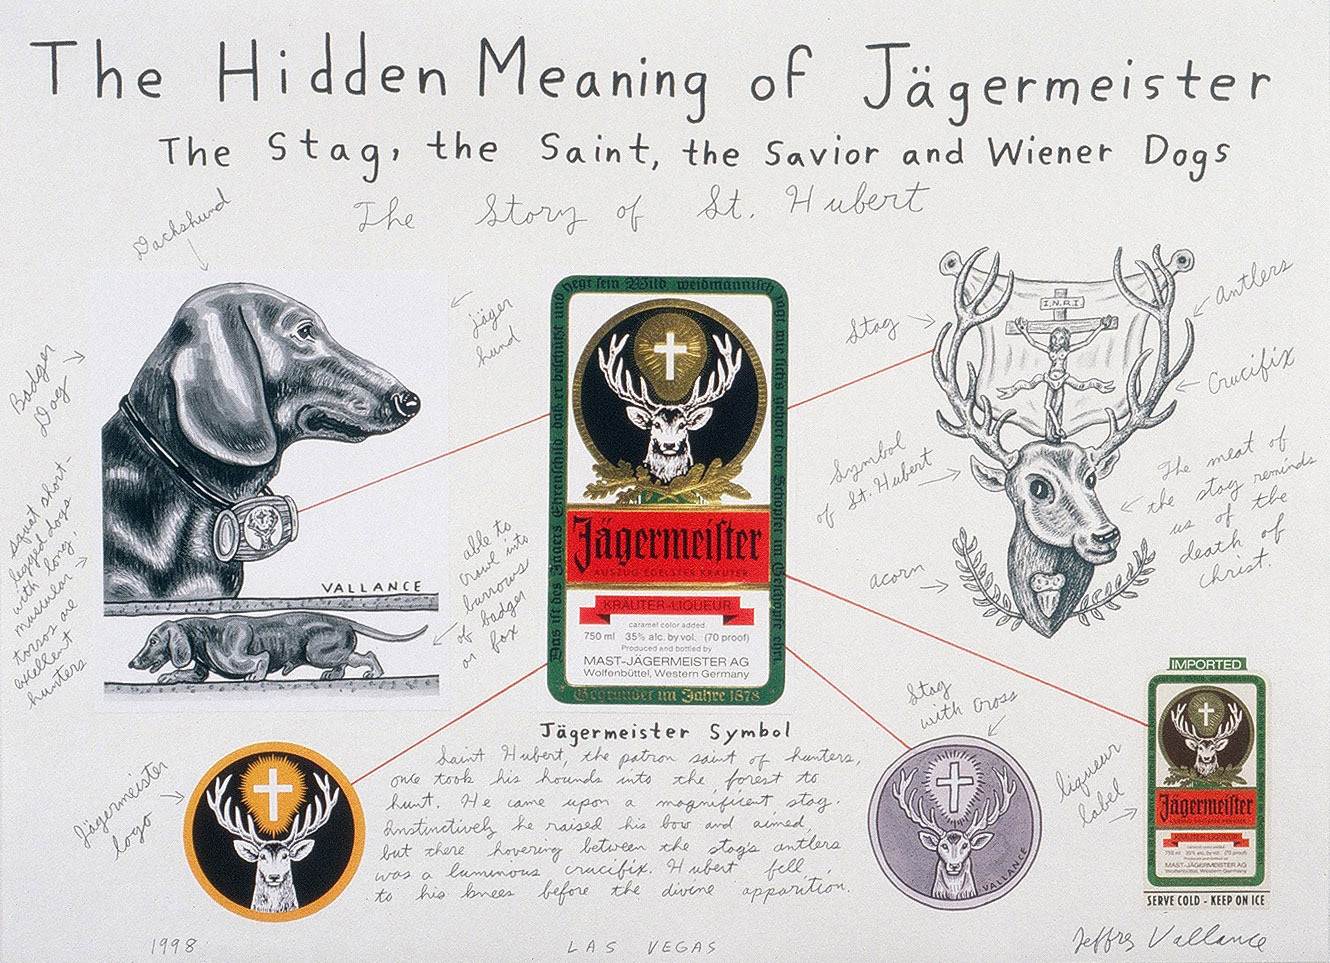 Jeffrey Vallance, <i>The Hidden Meaning of Jagermeister The Stag, the Saint, the Savior, and Wiener Dogs</i>, 1998. Mixed media on paper, 22 x 30 inches.